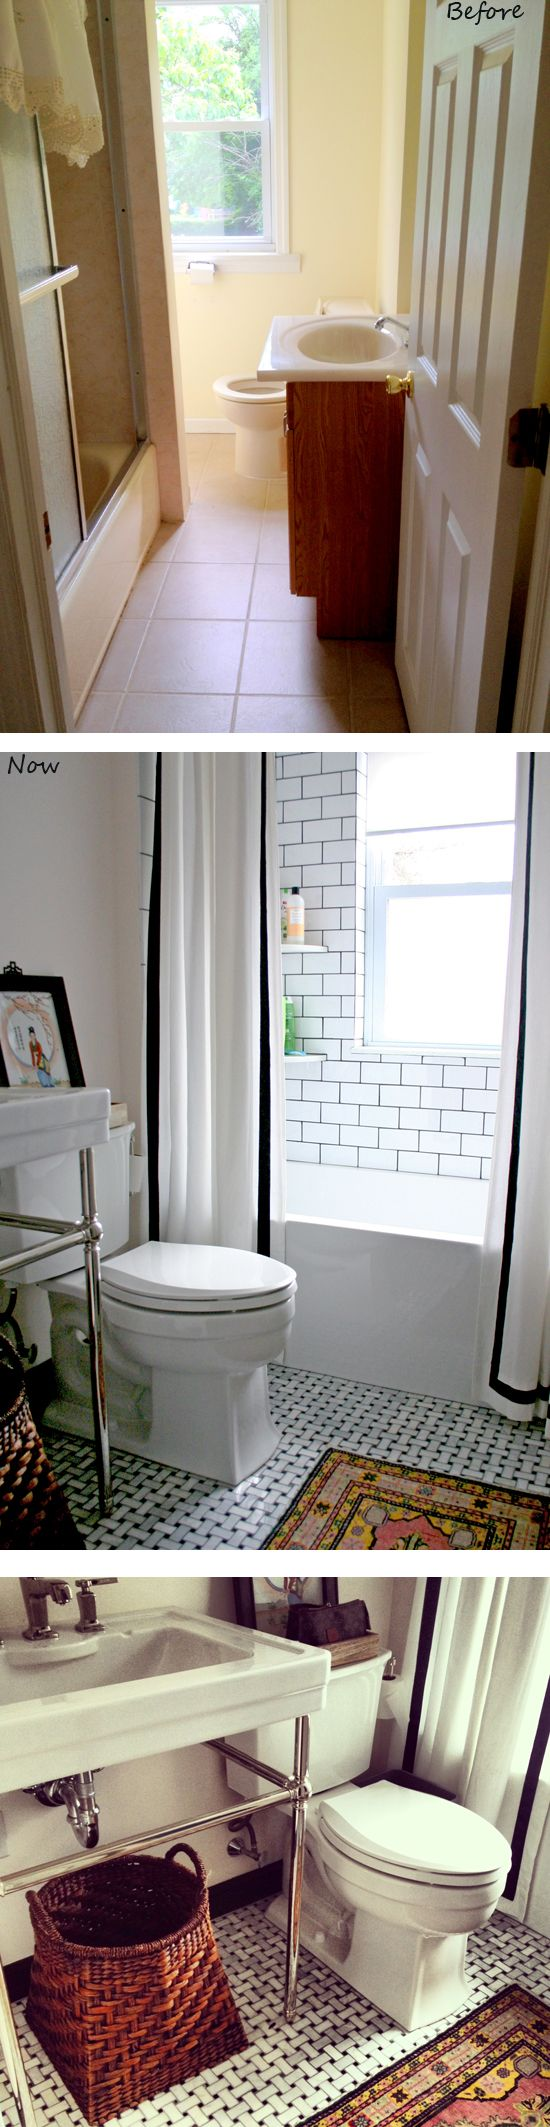 design manifest bathroom before and after